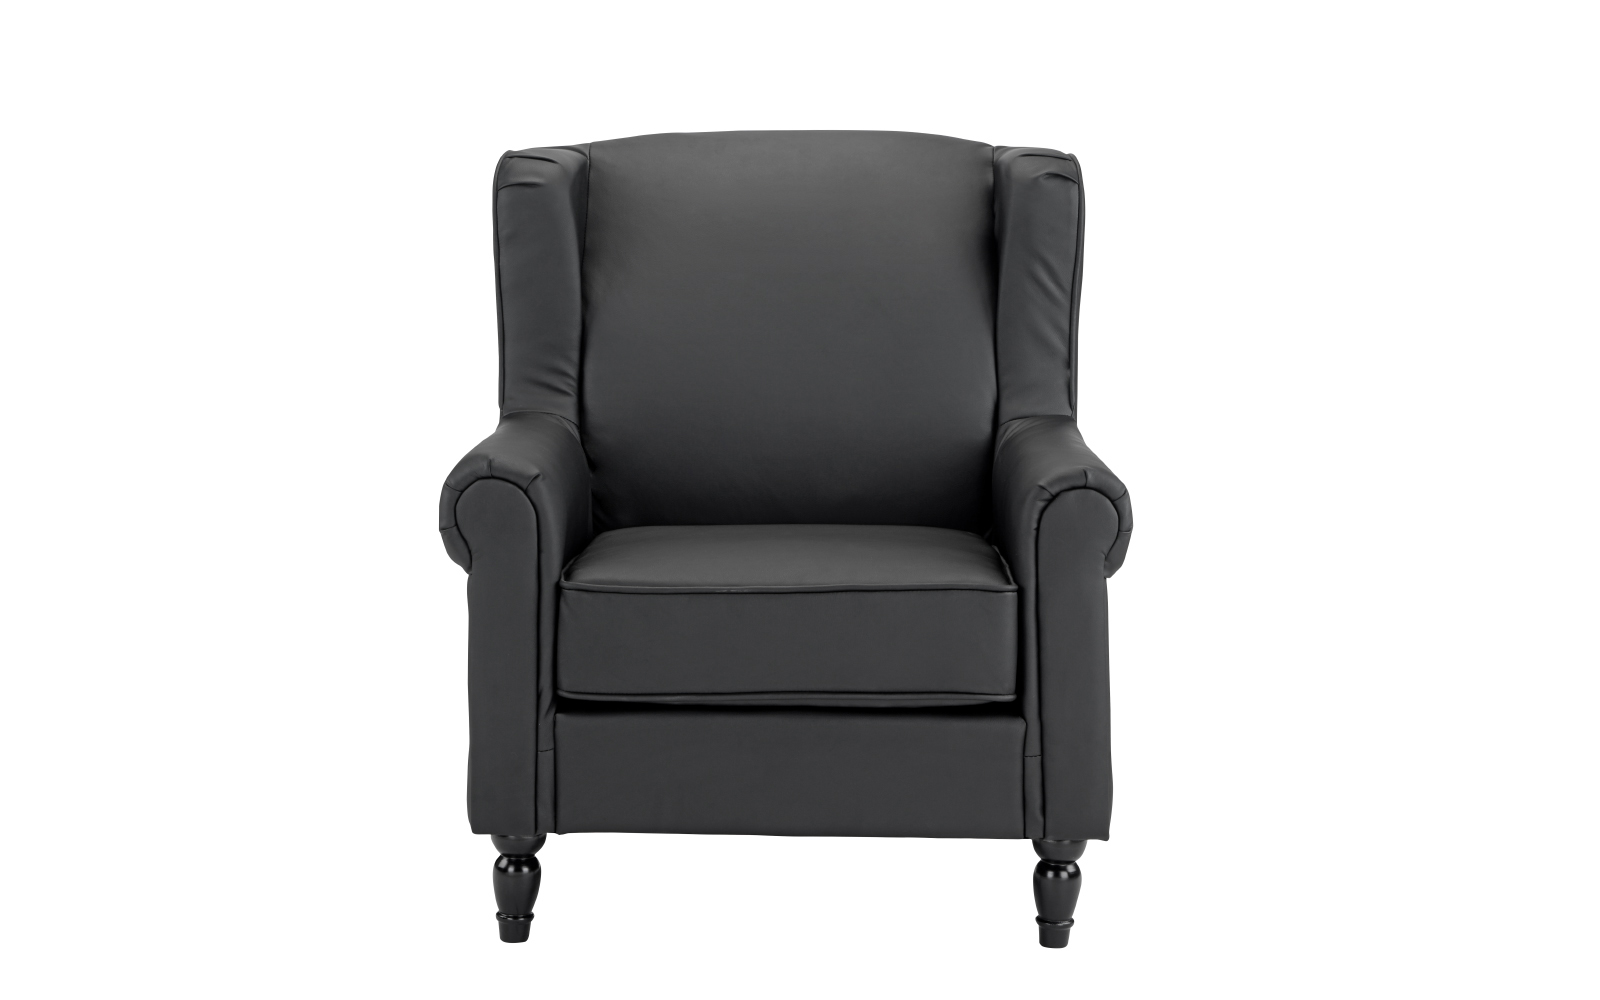 Ordinaire Vintage Inspired Black Faux Leather Armchair With Wooden Legs